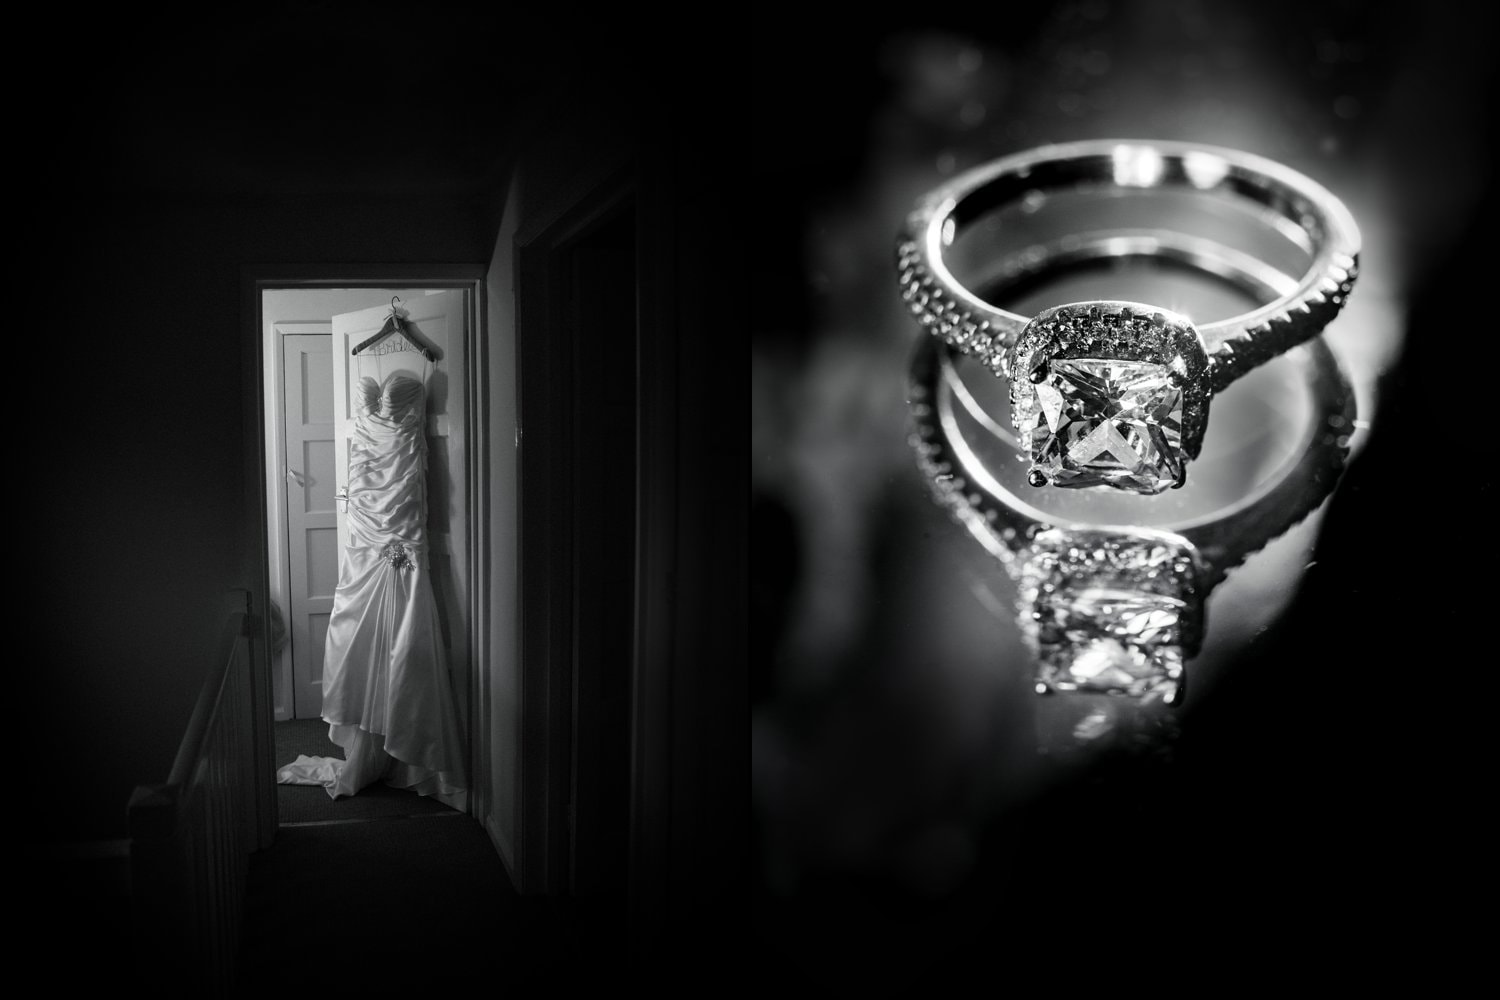 Hexham Abbey Wedding, wedding ring and dress